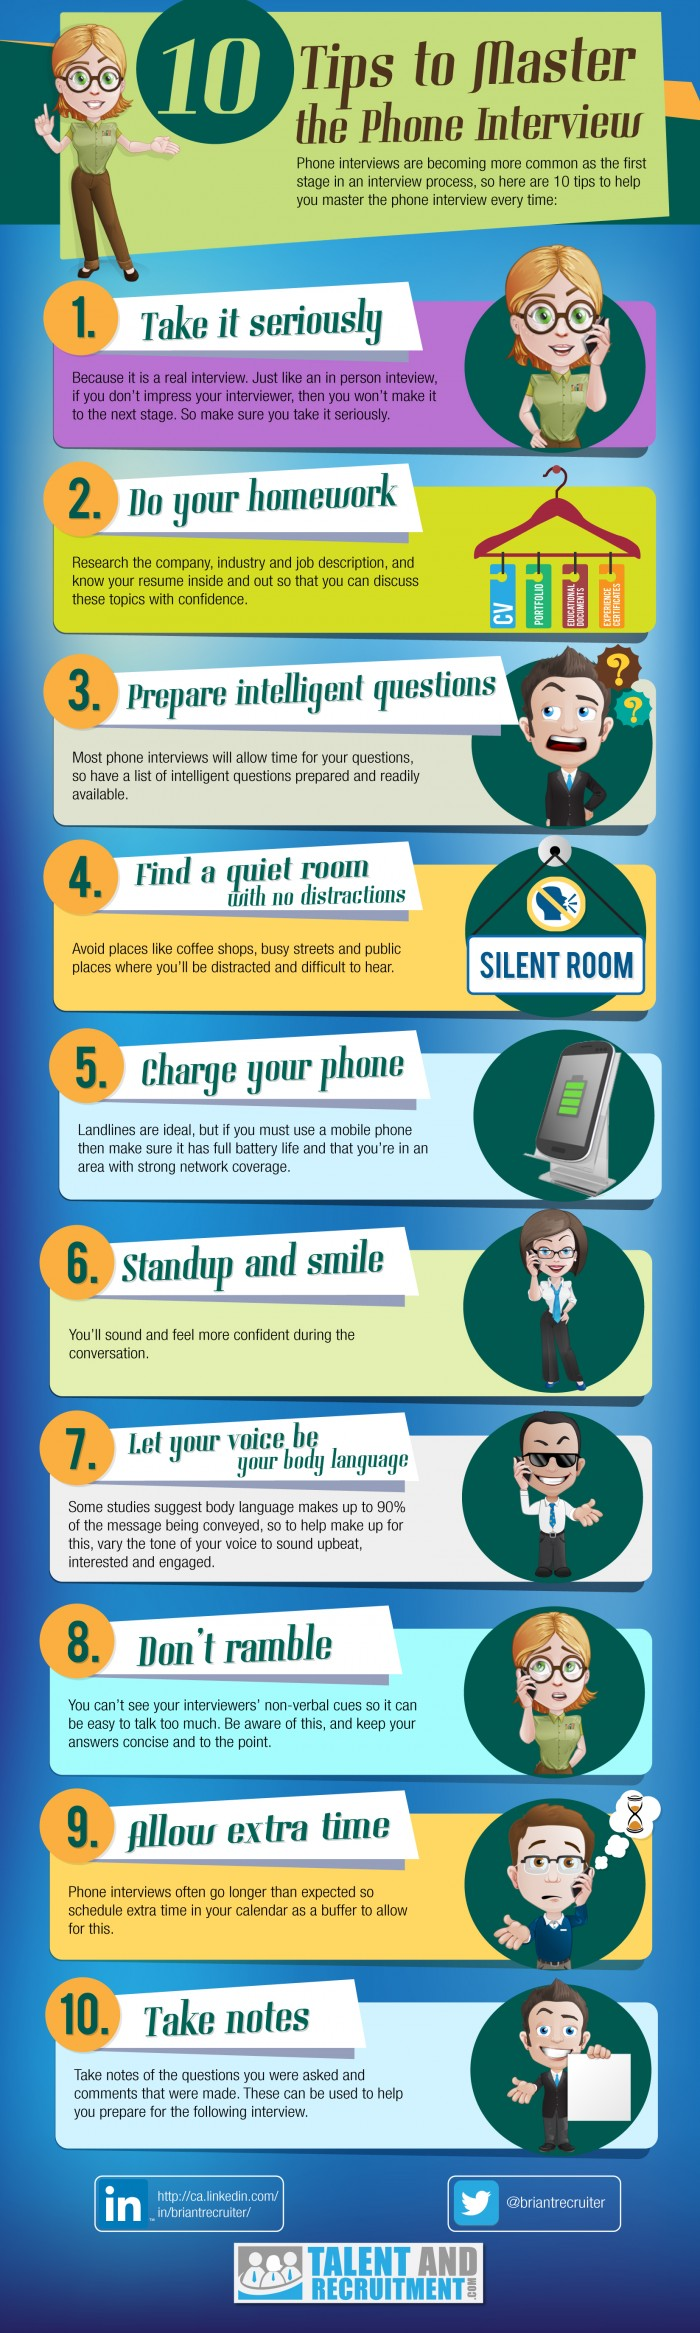 10-Tips-Master-Phone-Interview1-700x2333